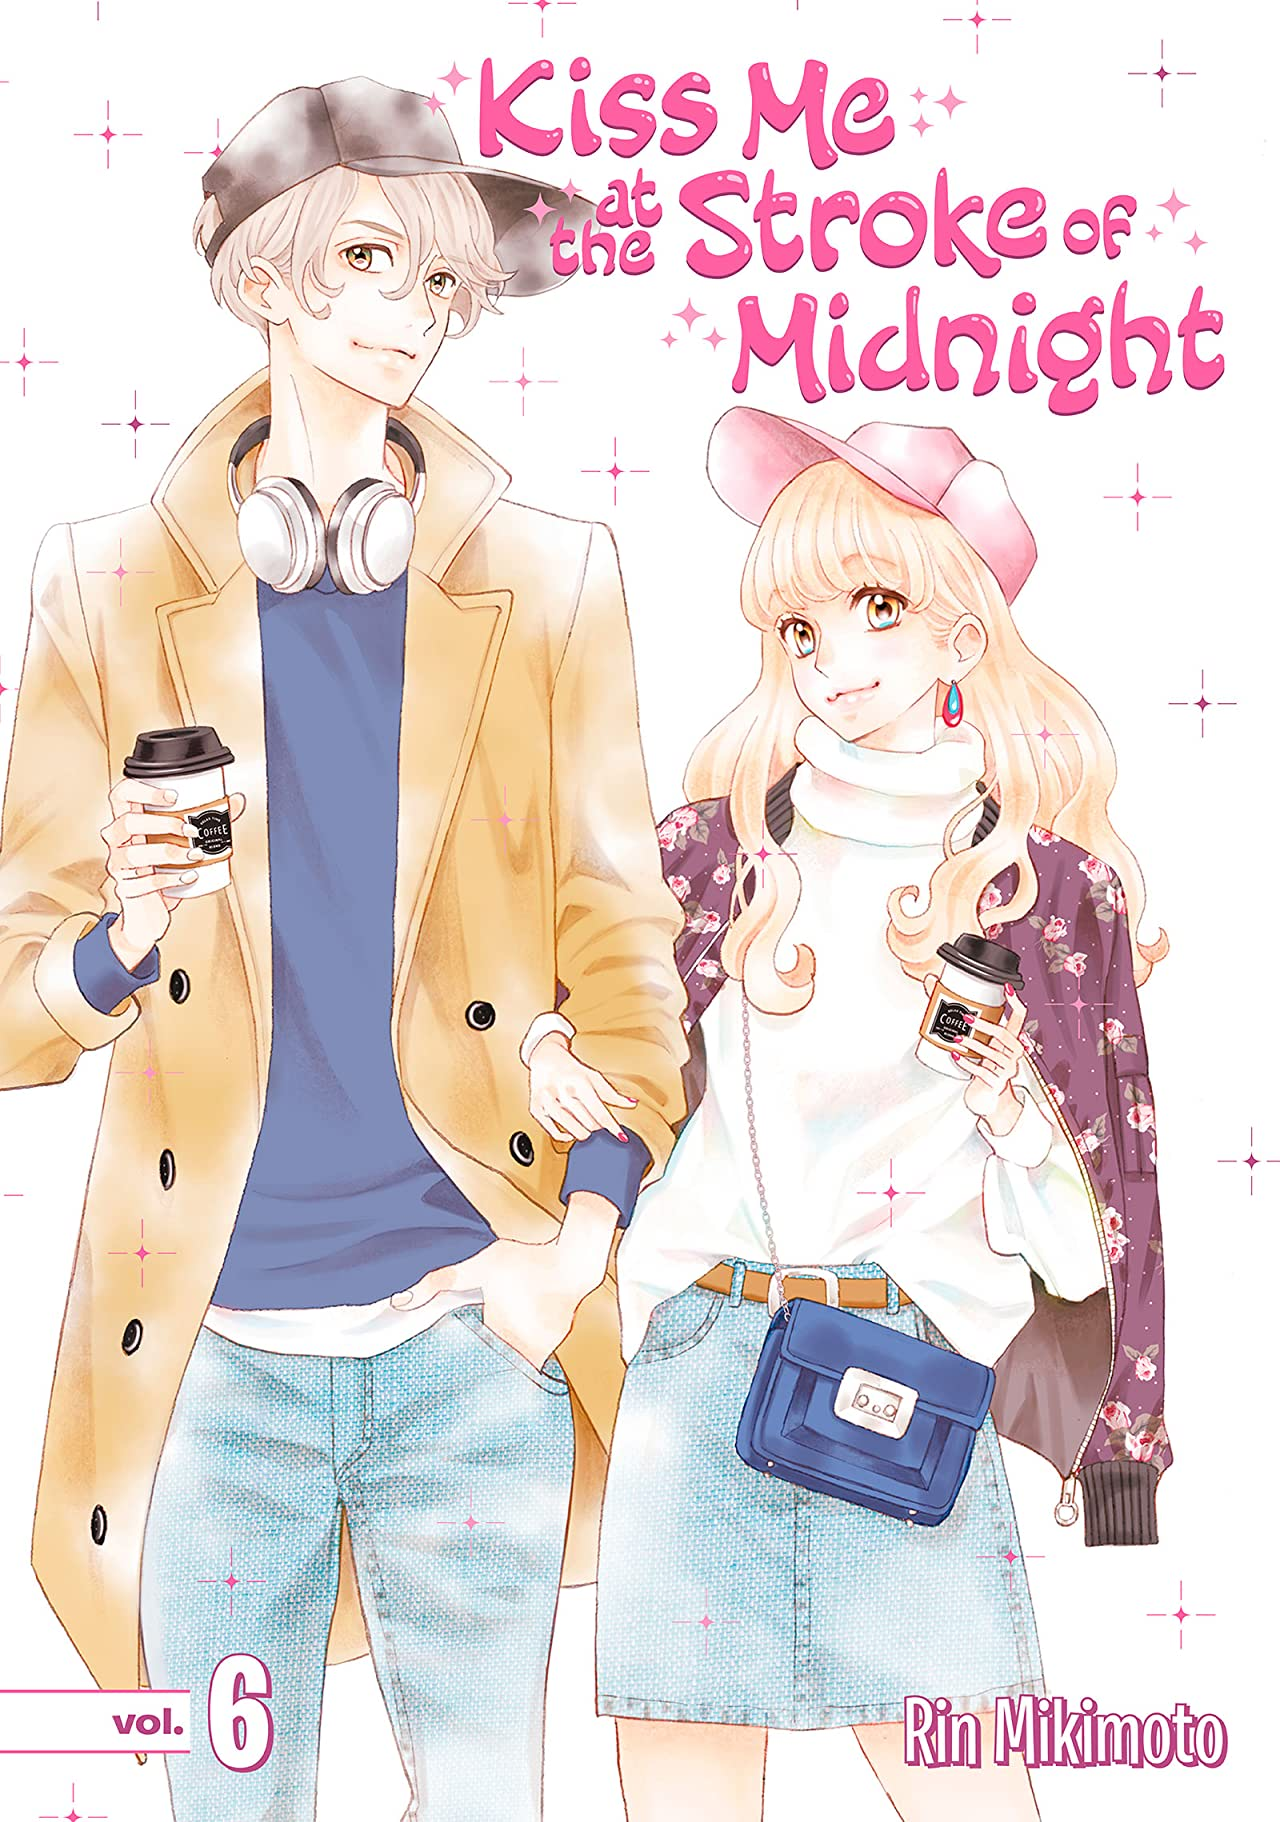 Kiss Me At the Stroke of Midnight Vol. 6